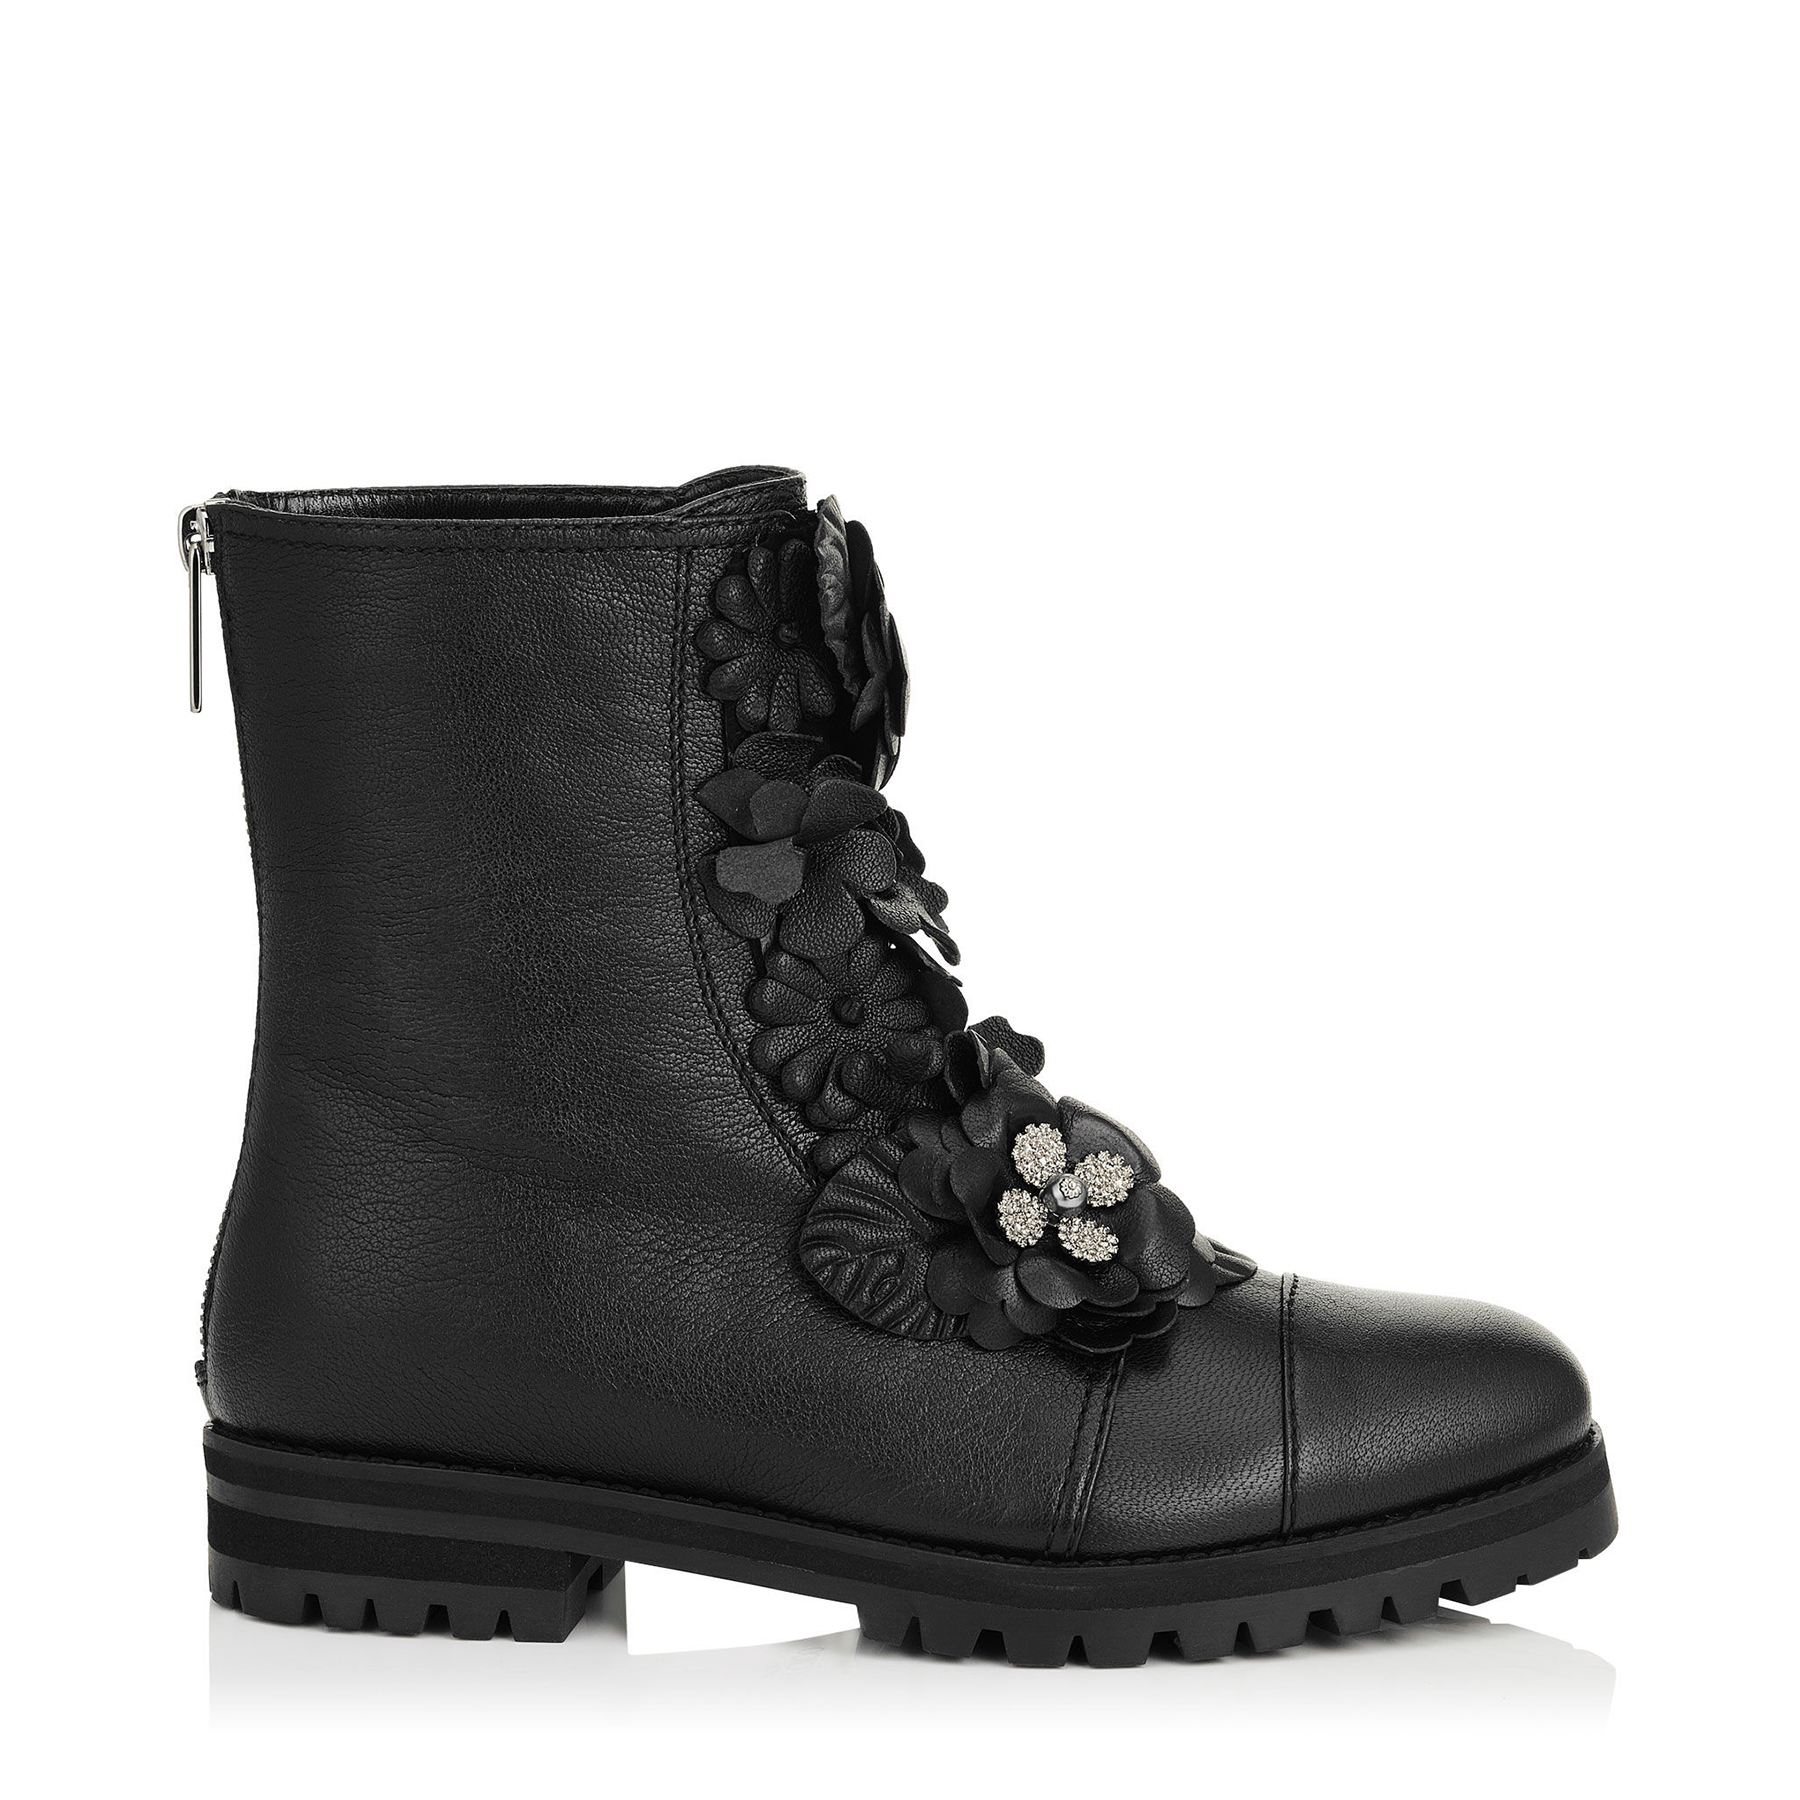 HAVANA FLAT Black Soft Textured Leather with Floral Applique Combat Boots